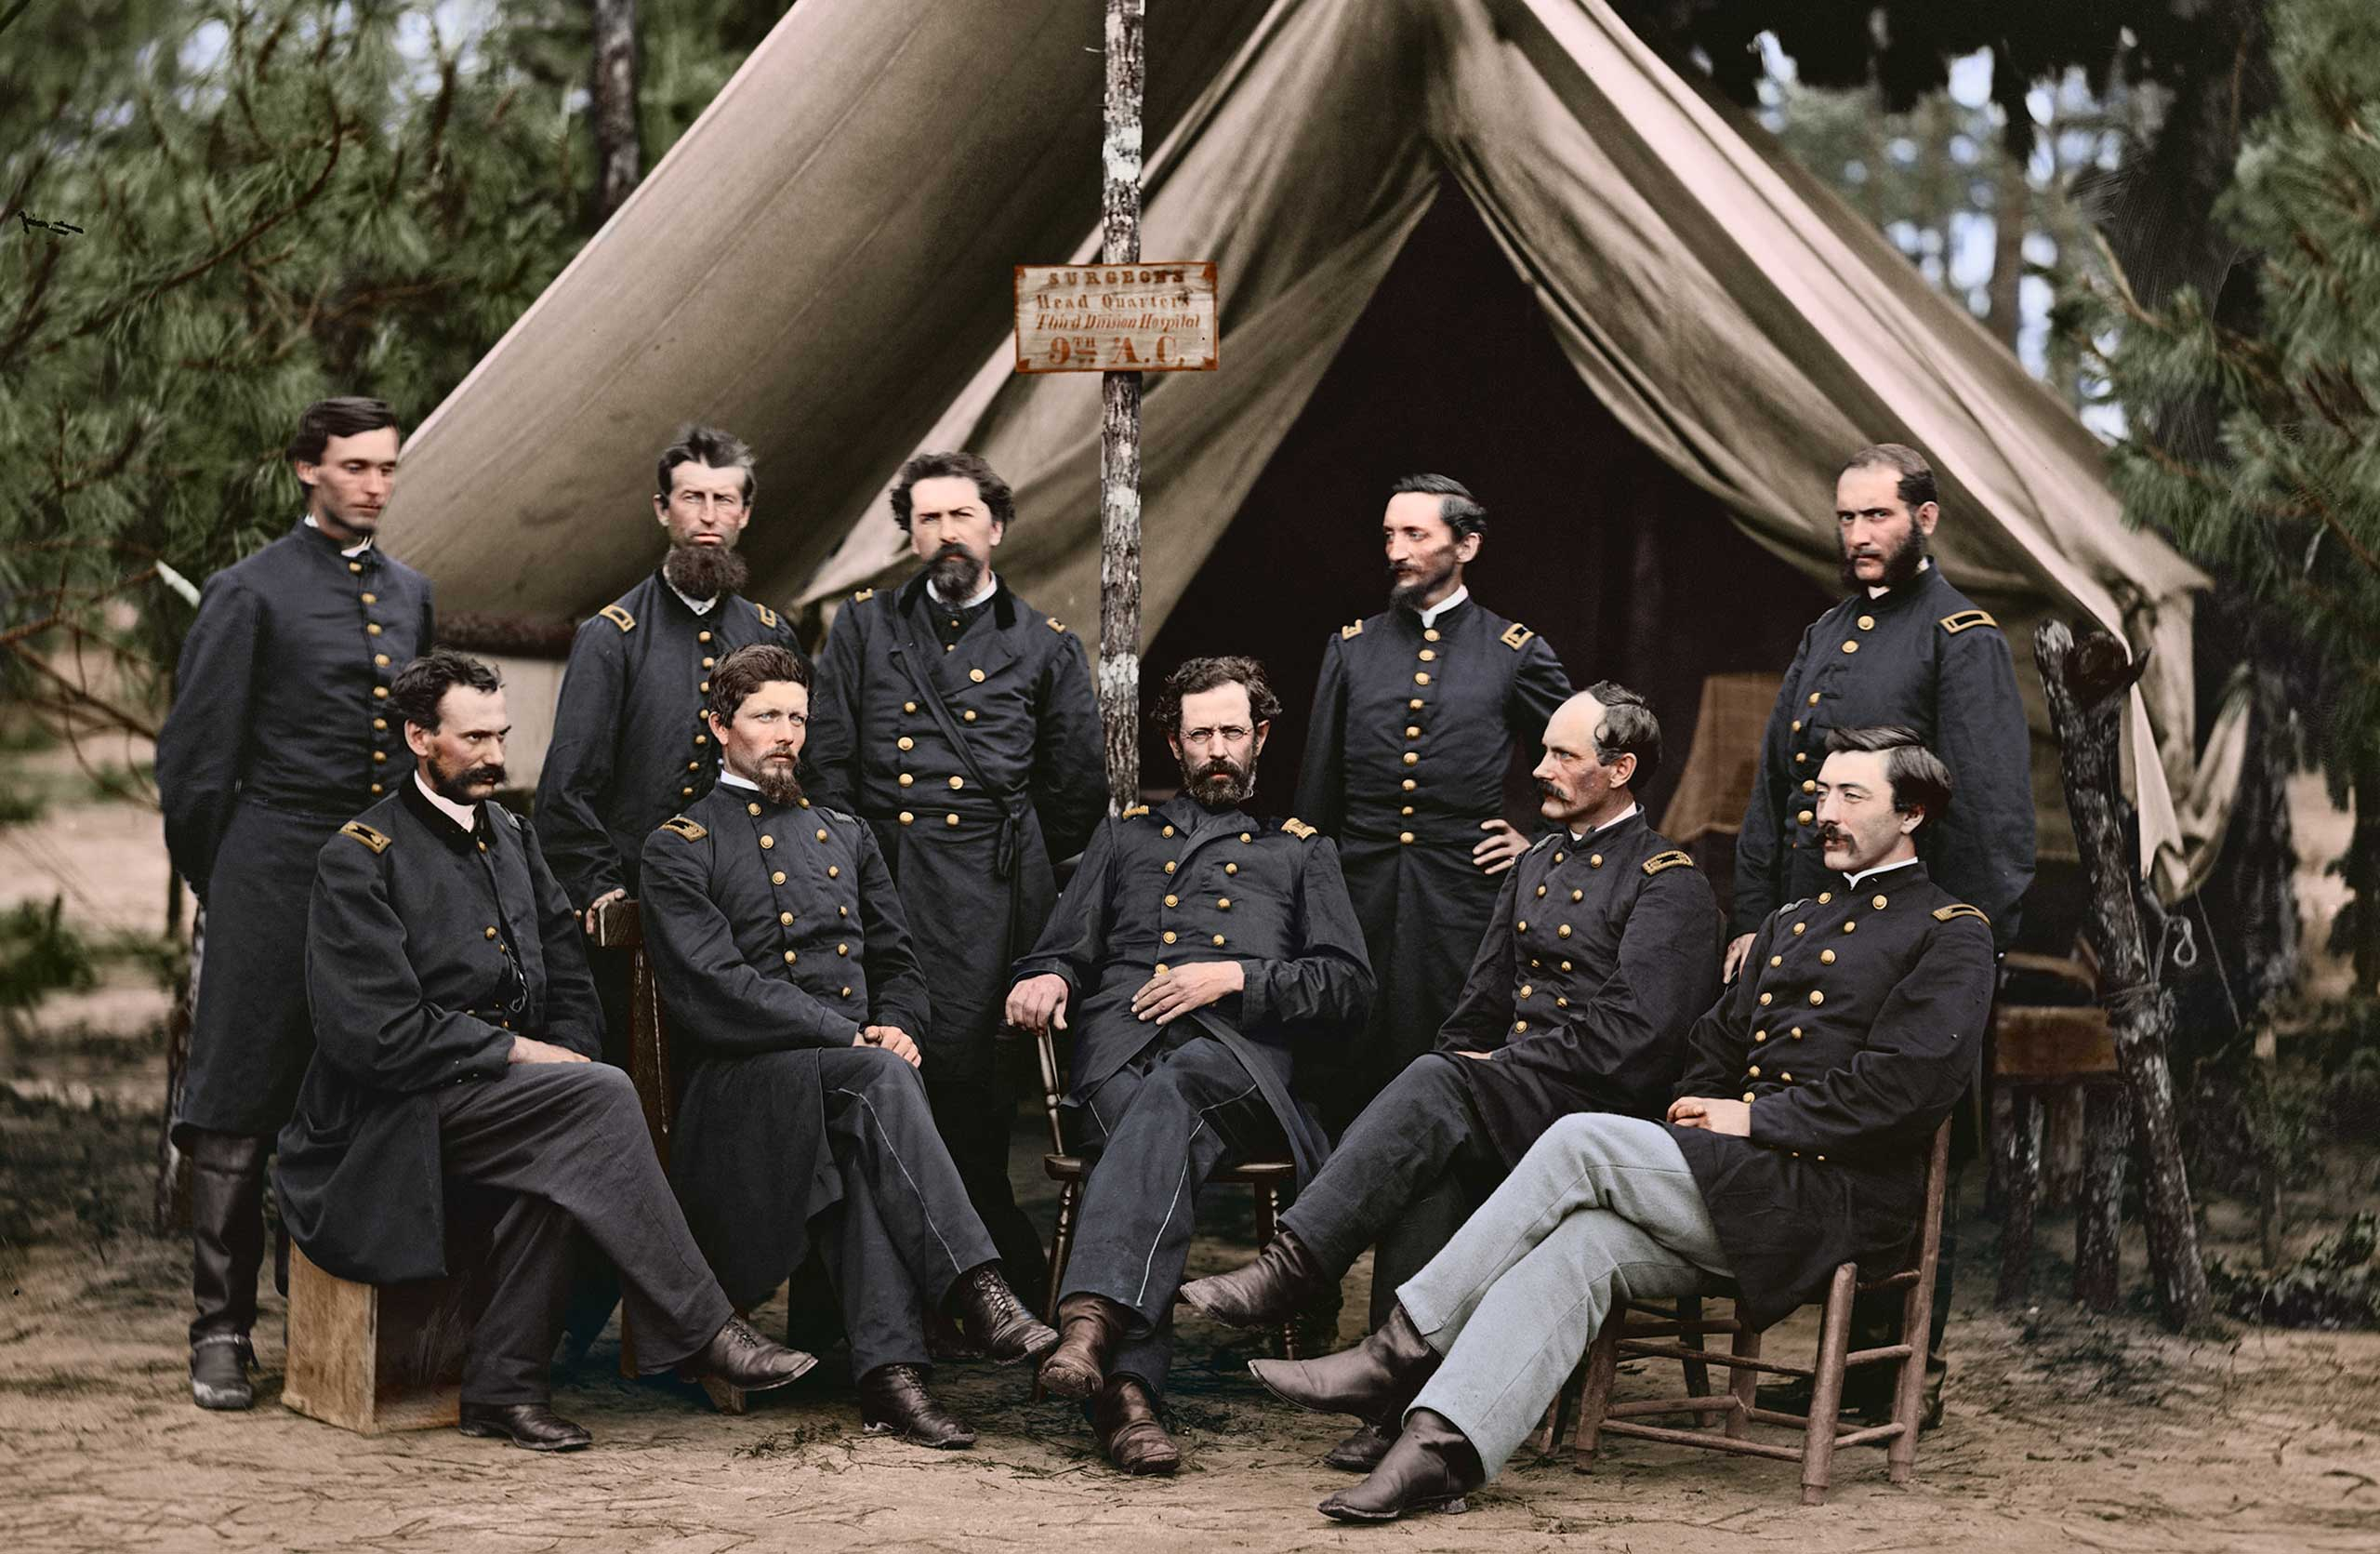 Surgeons of the 3rd Division before hospital tent in Petersburg, Va., Aug. 1864.